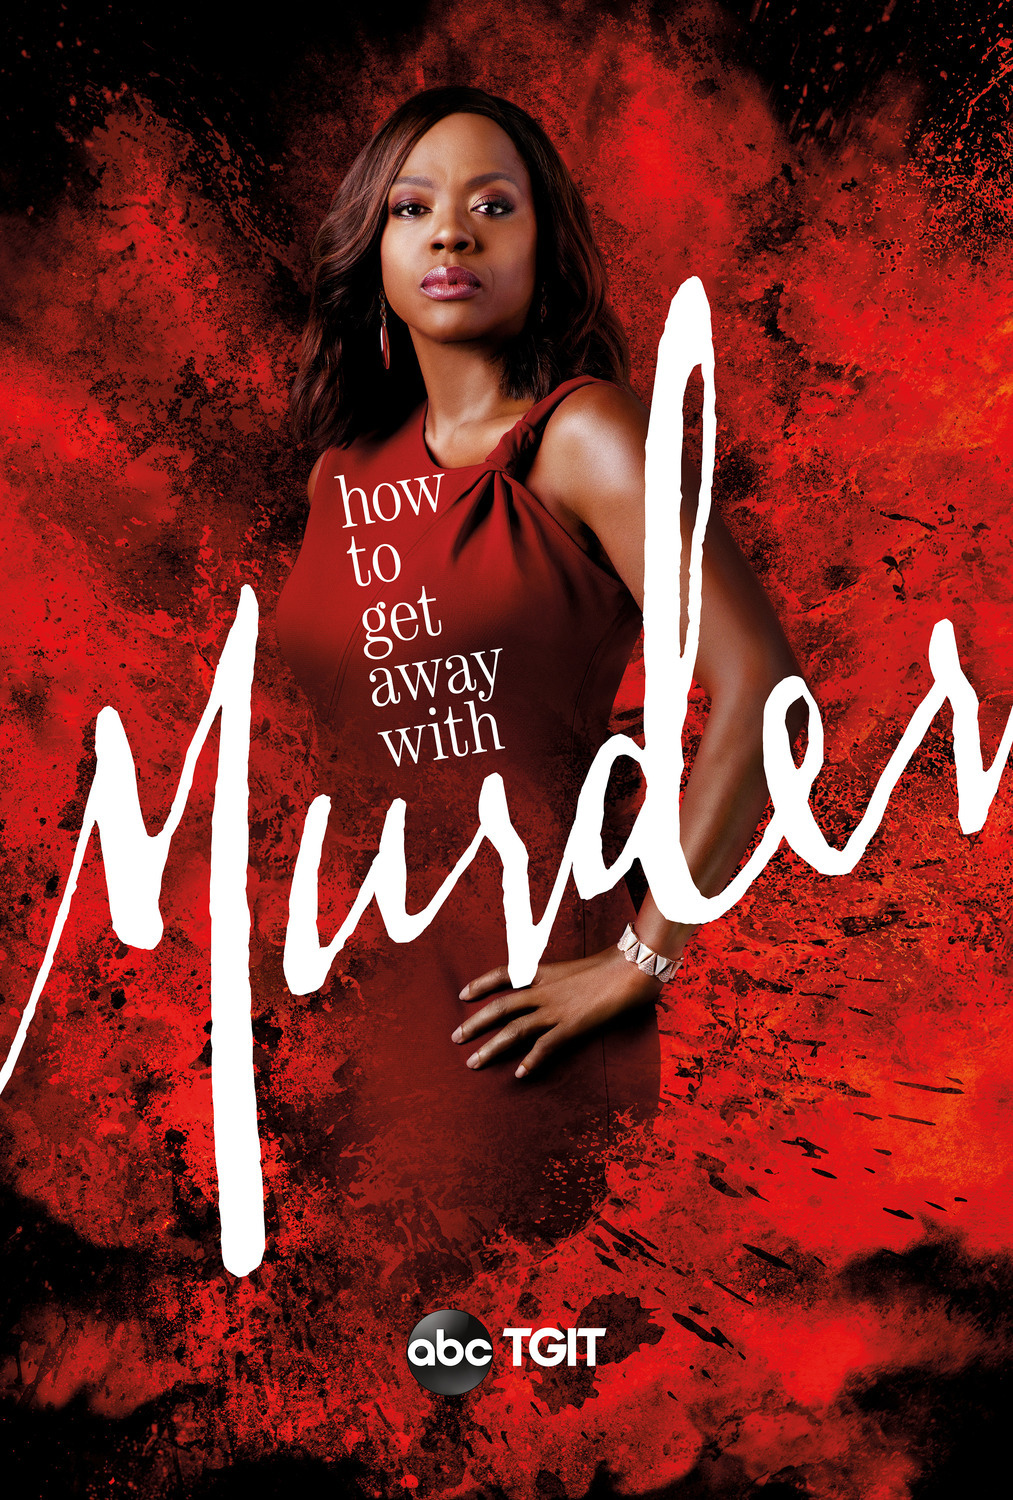 4ec1d4641 How to Get Away with Murder (TV Series 2014– ) - IMDb